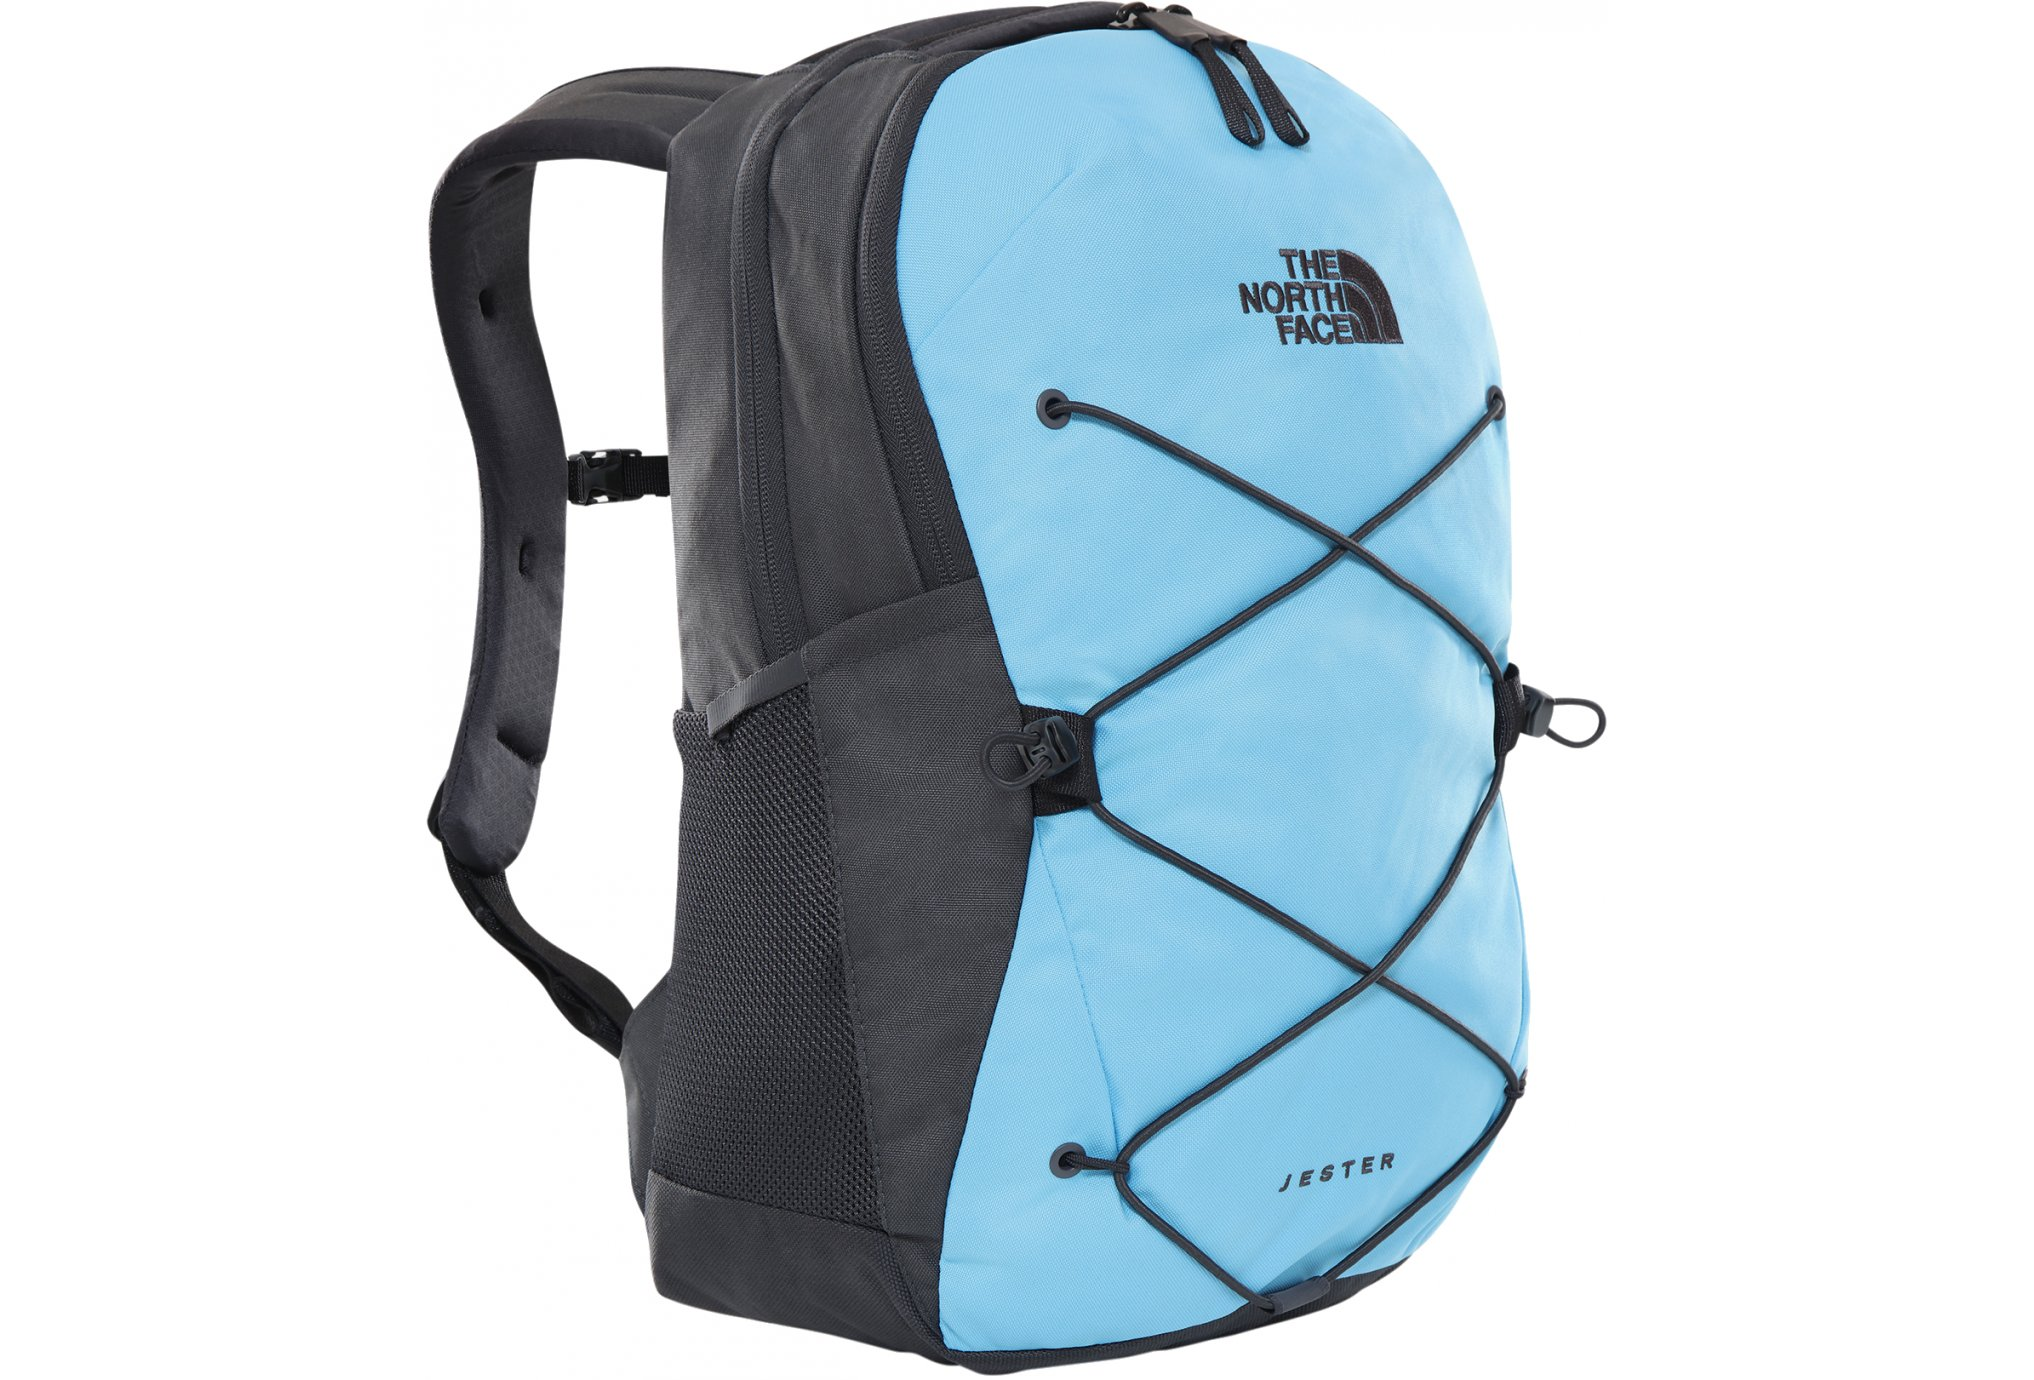 The North Face Jester W Sac à dos